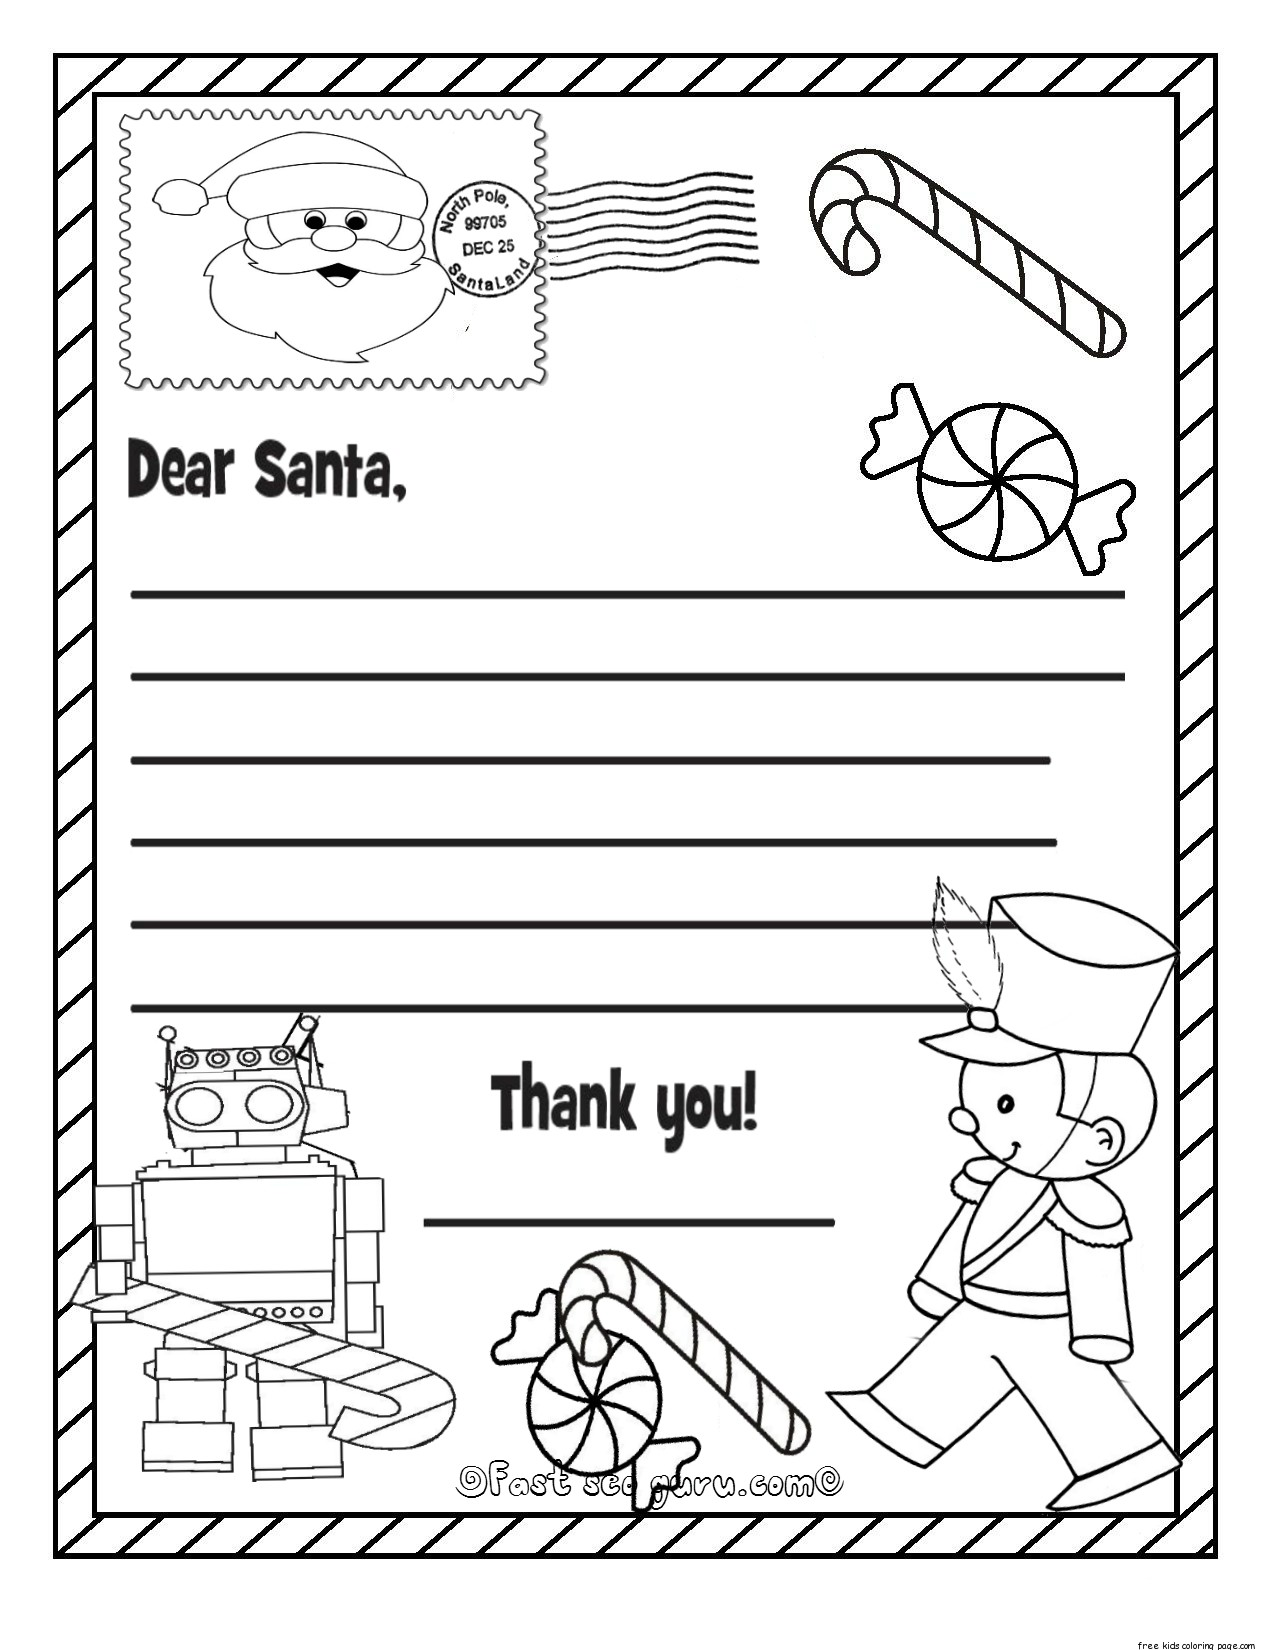 Printable christmas wish list to